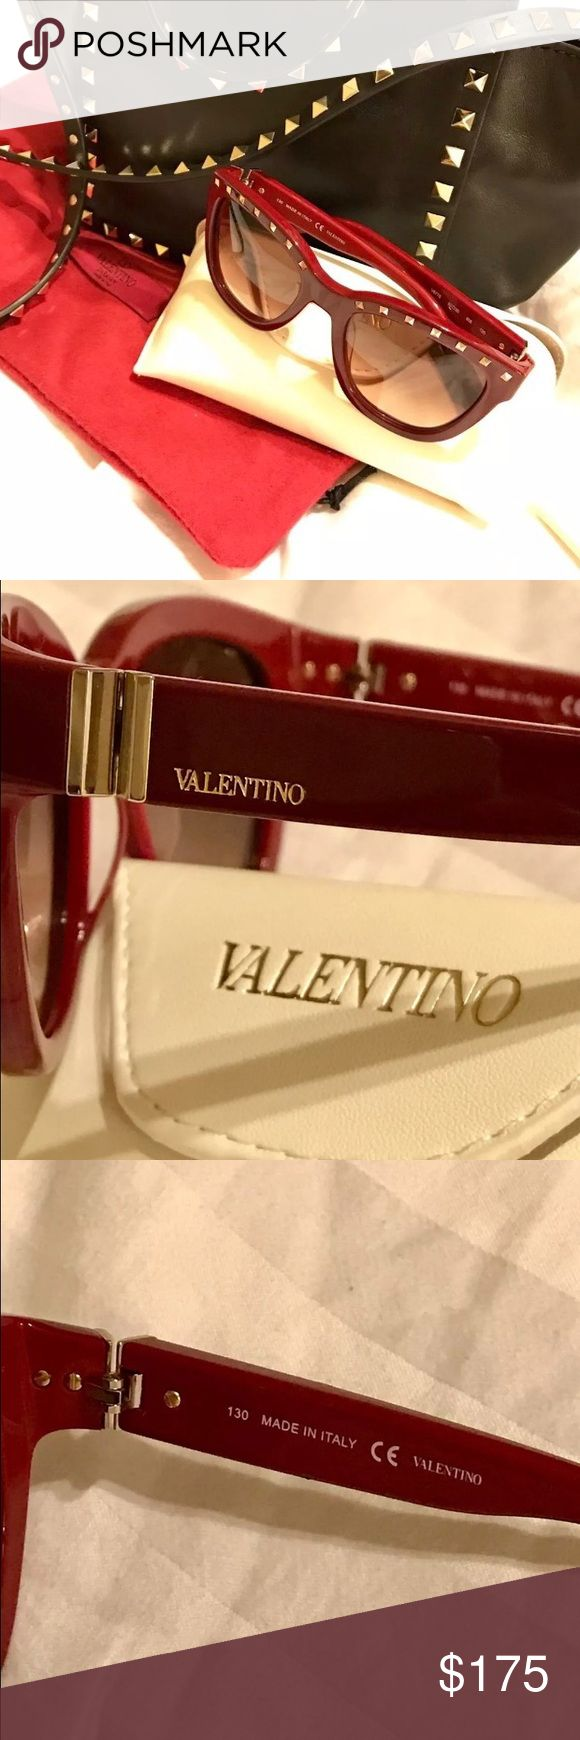 Valentino Sunglasses Red/Rouge Noir Brand new Valentino Sunglaases. Comes with soft case and cloth. Never been use! Super cute and chic! No scratches! Bag not included in this listing. That's my baby :) Valentino Garavani Accessories Sunglasses